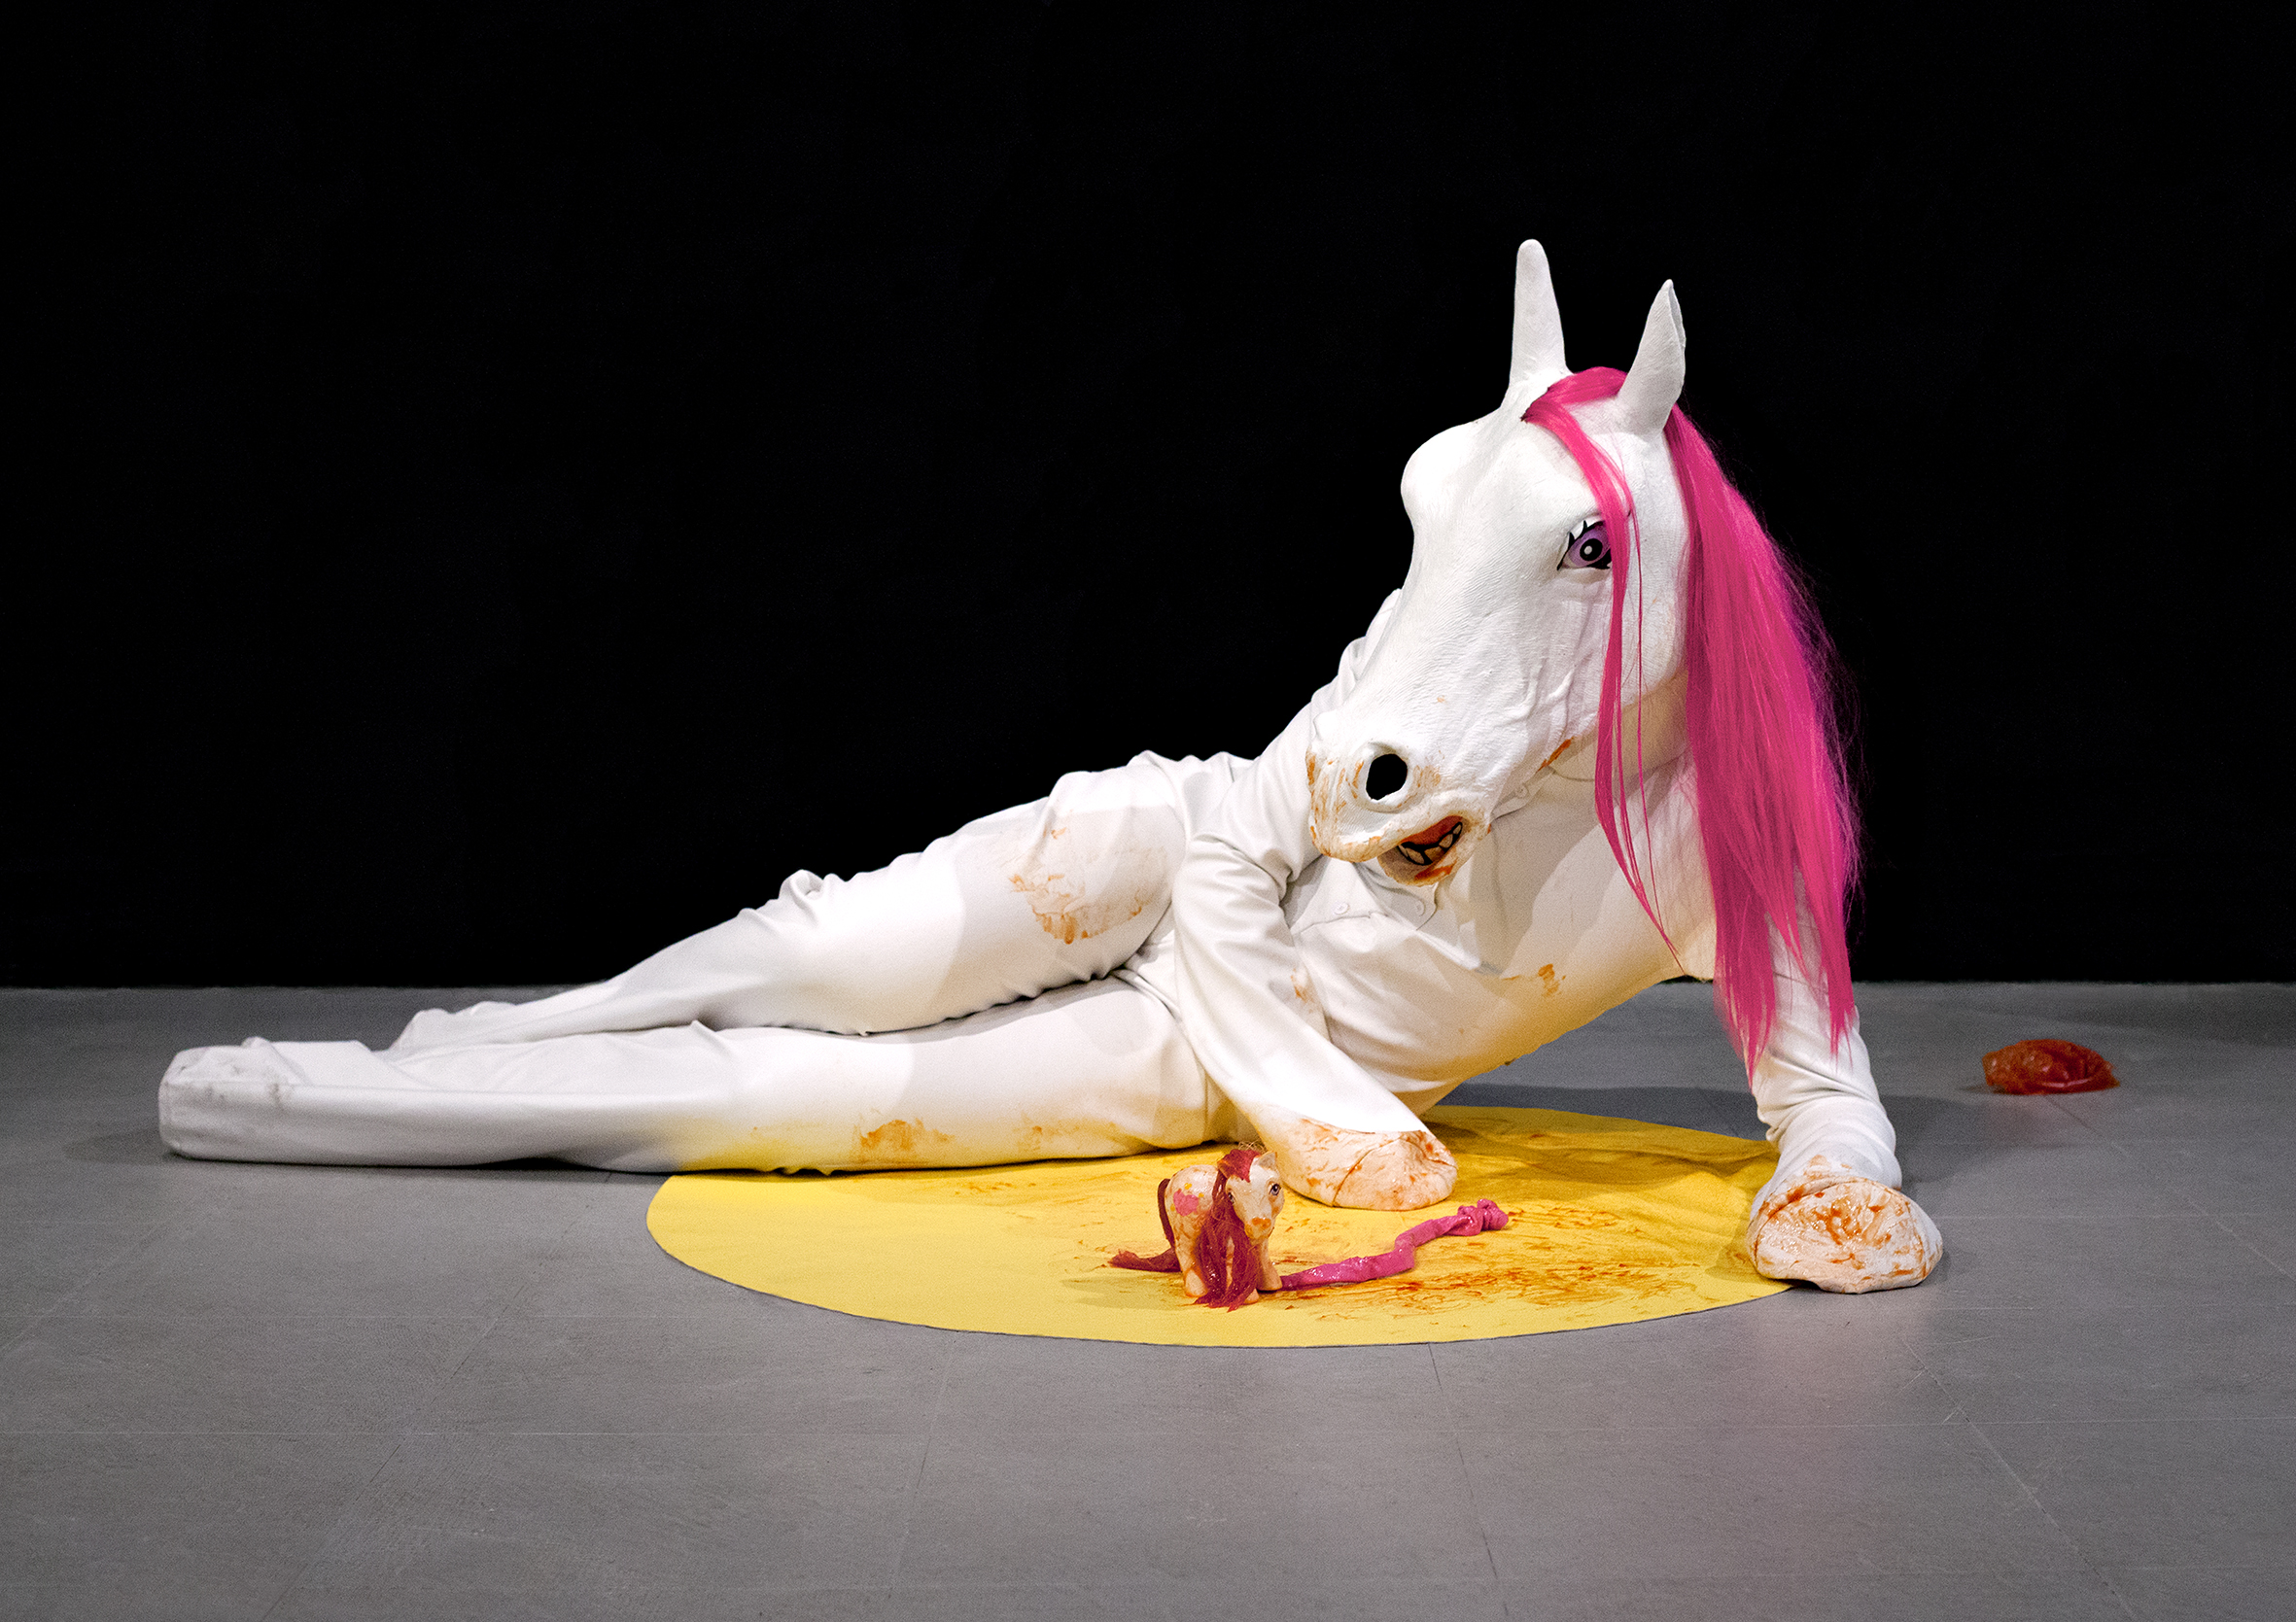 Anja Carr, Performance: My little me; Performance International Festival '15, Miami, 2015